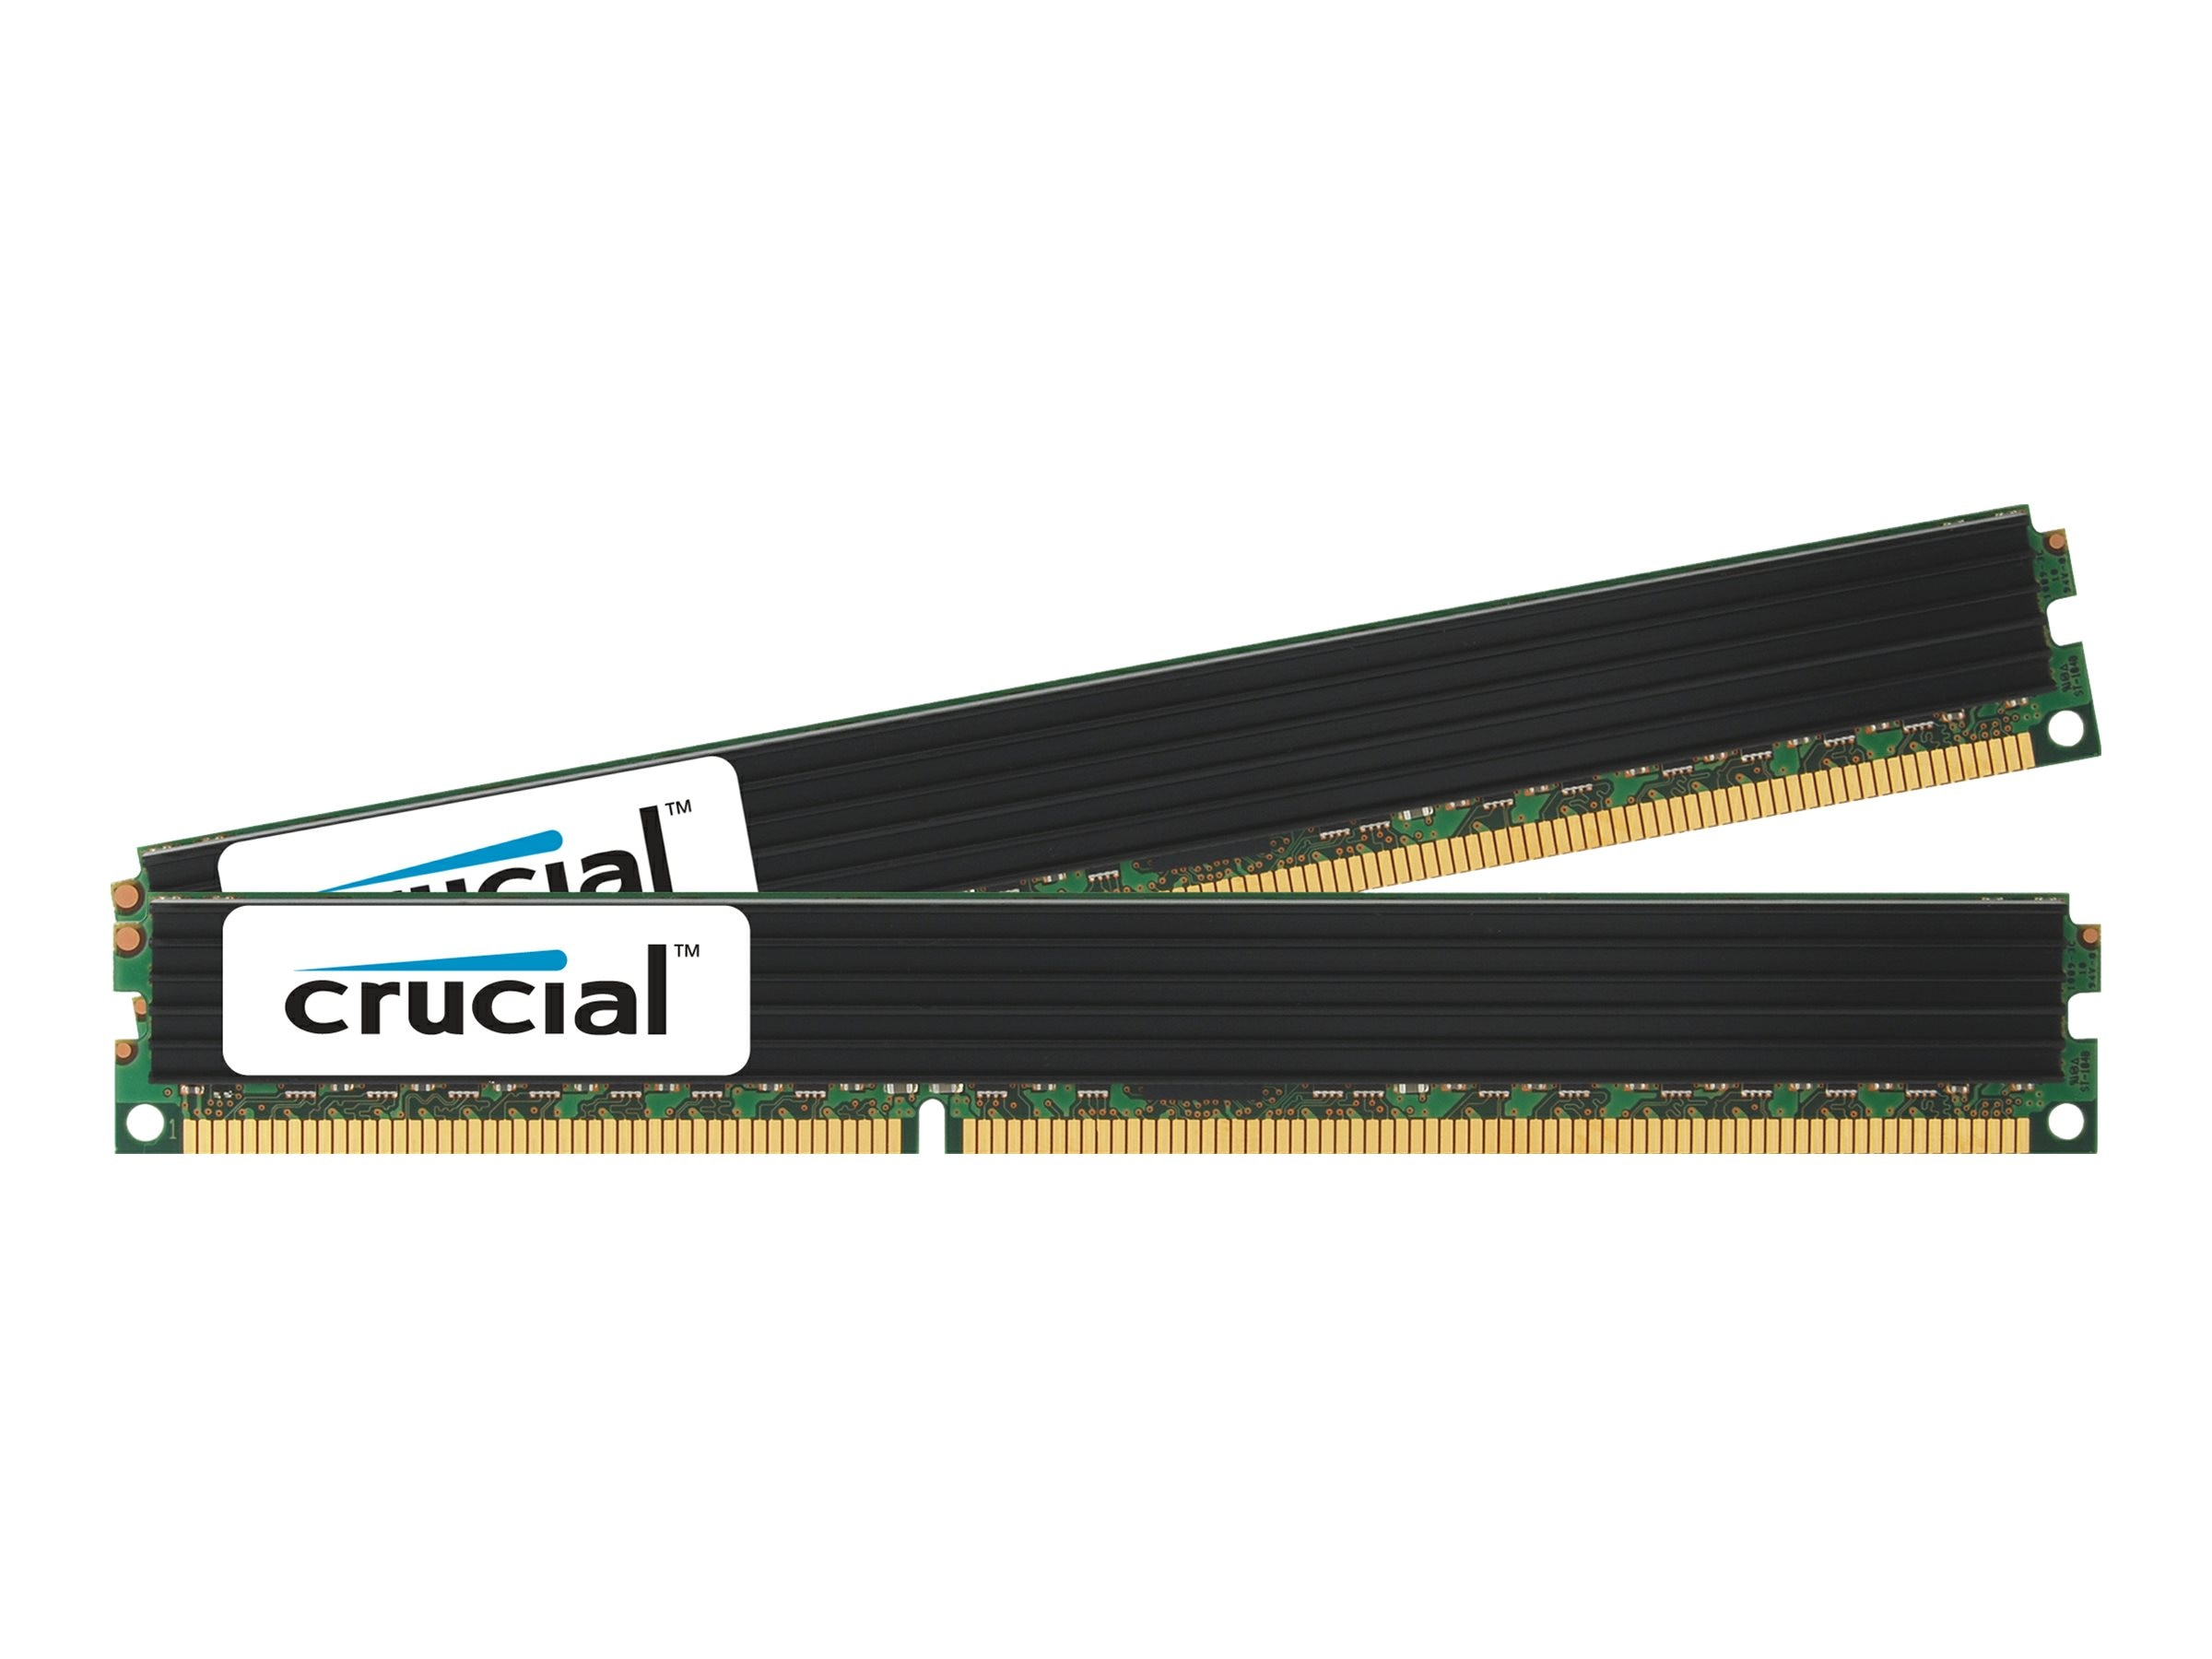 Crucial 8GB PC3-14900 240-pin DDR3 SDRAM DIMM Kit